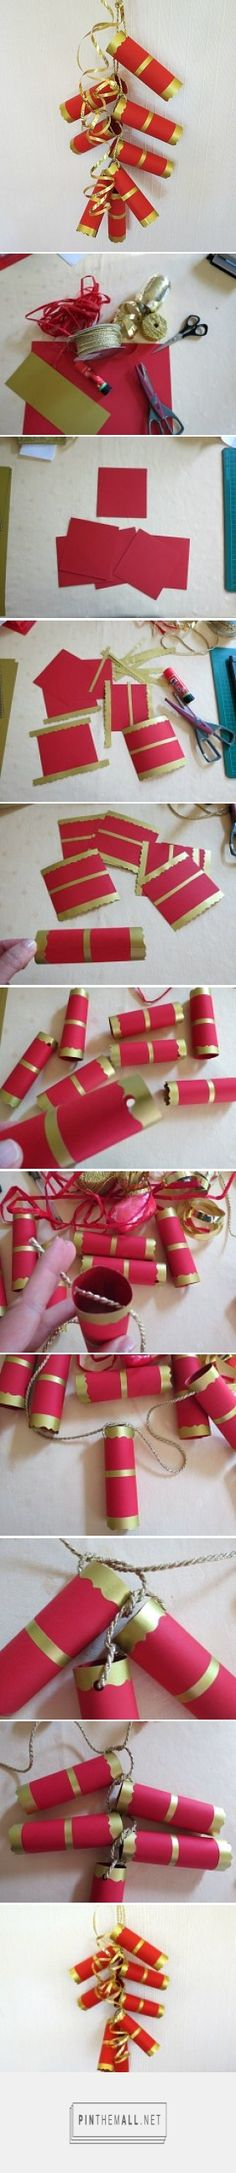 Chinese New Year Firecrackers - created via http://pinthemall.net